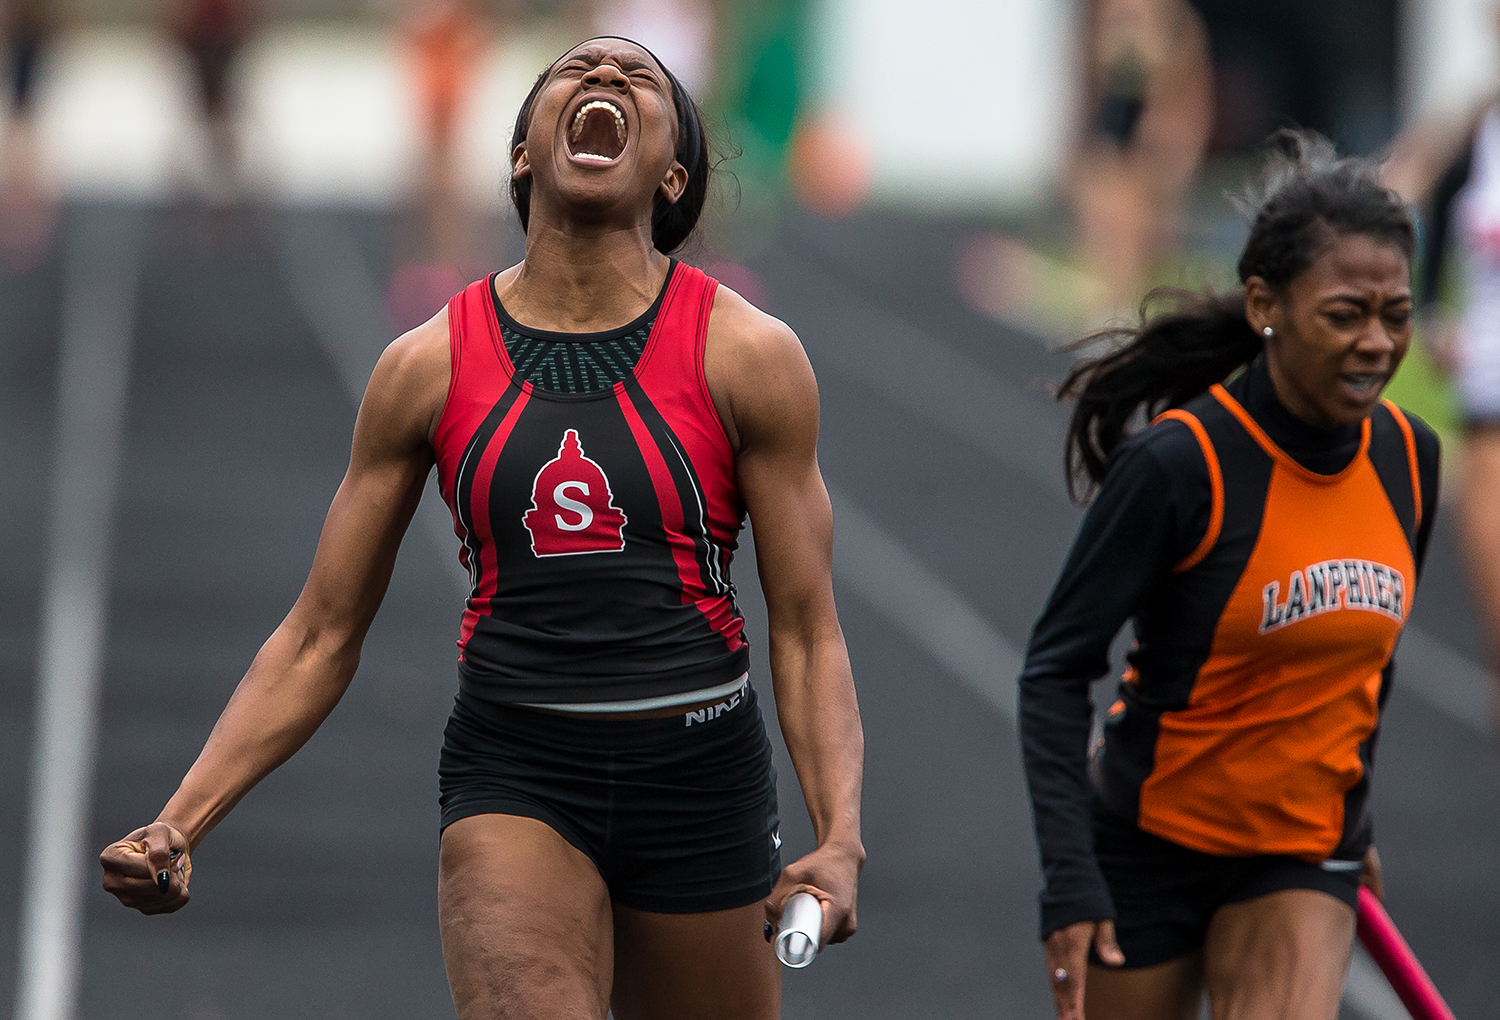 Springfield High's Ozzy Erewele screams after crossing the finish line first in the 4x100-meter relay during the Girls Central State Eight Track and Field Meet at Eisenhower High School on May 3. [Justin L. Fowler/The State Journal-Register]